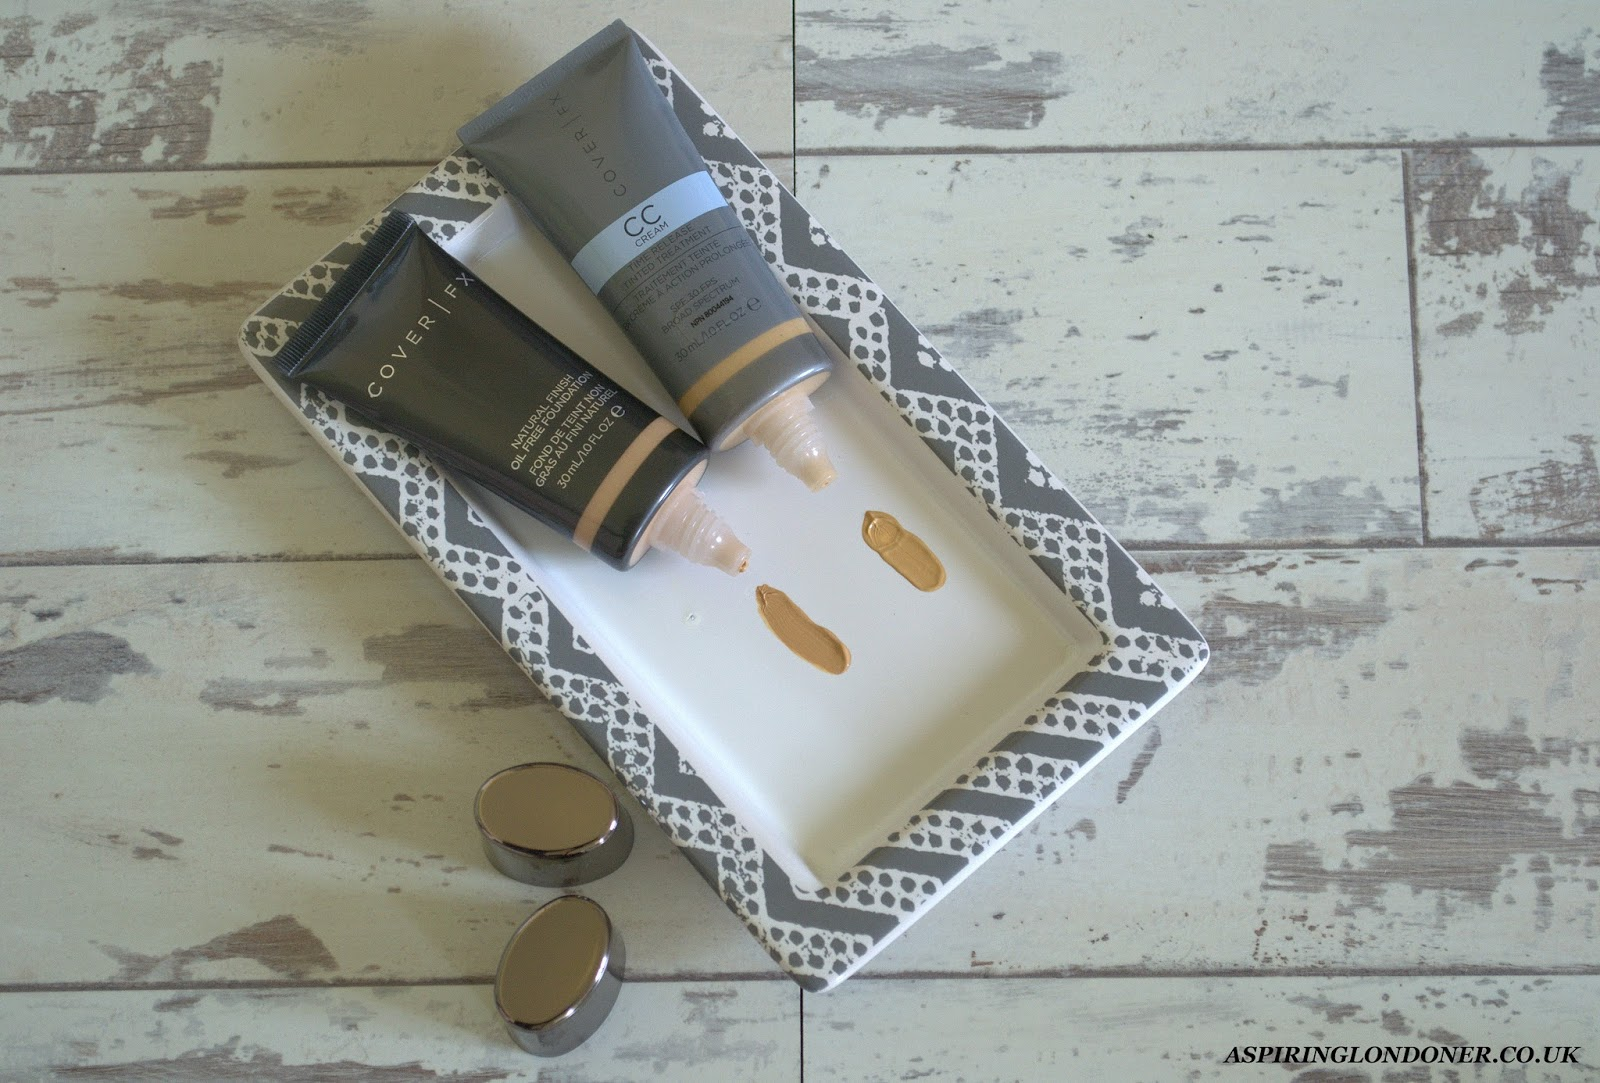 Cover FX Natural Finish Oil Free Foundation & Cover FX CC Cream Review Swatches - Aspiring Londoner